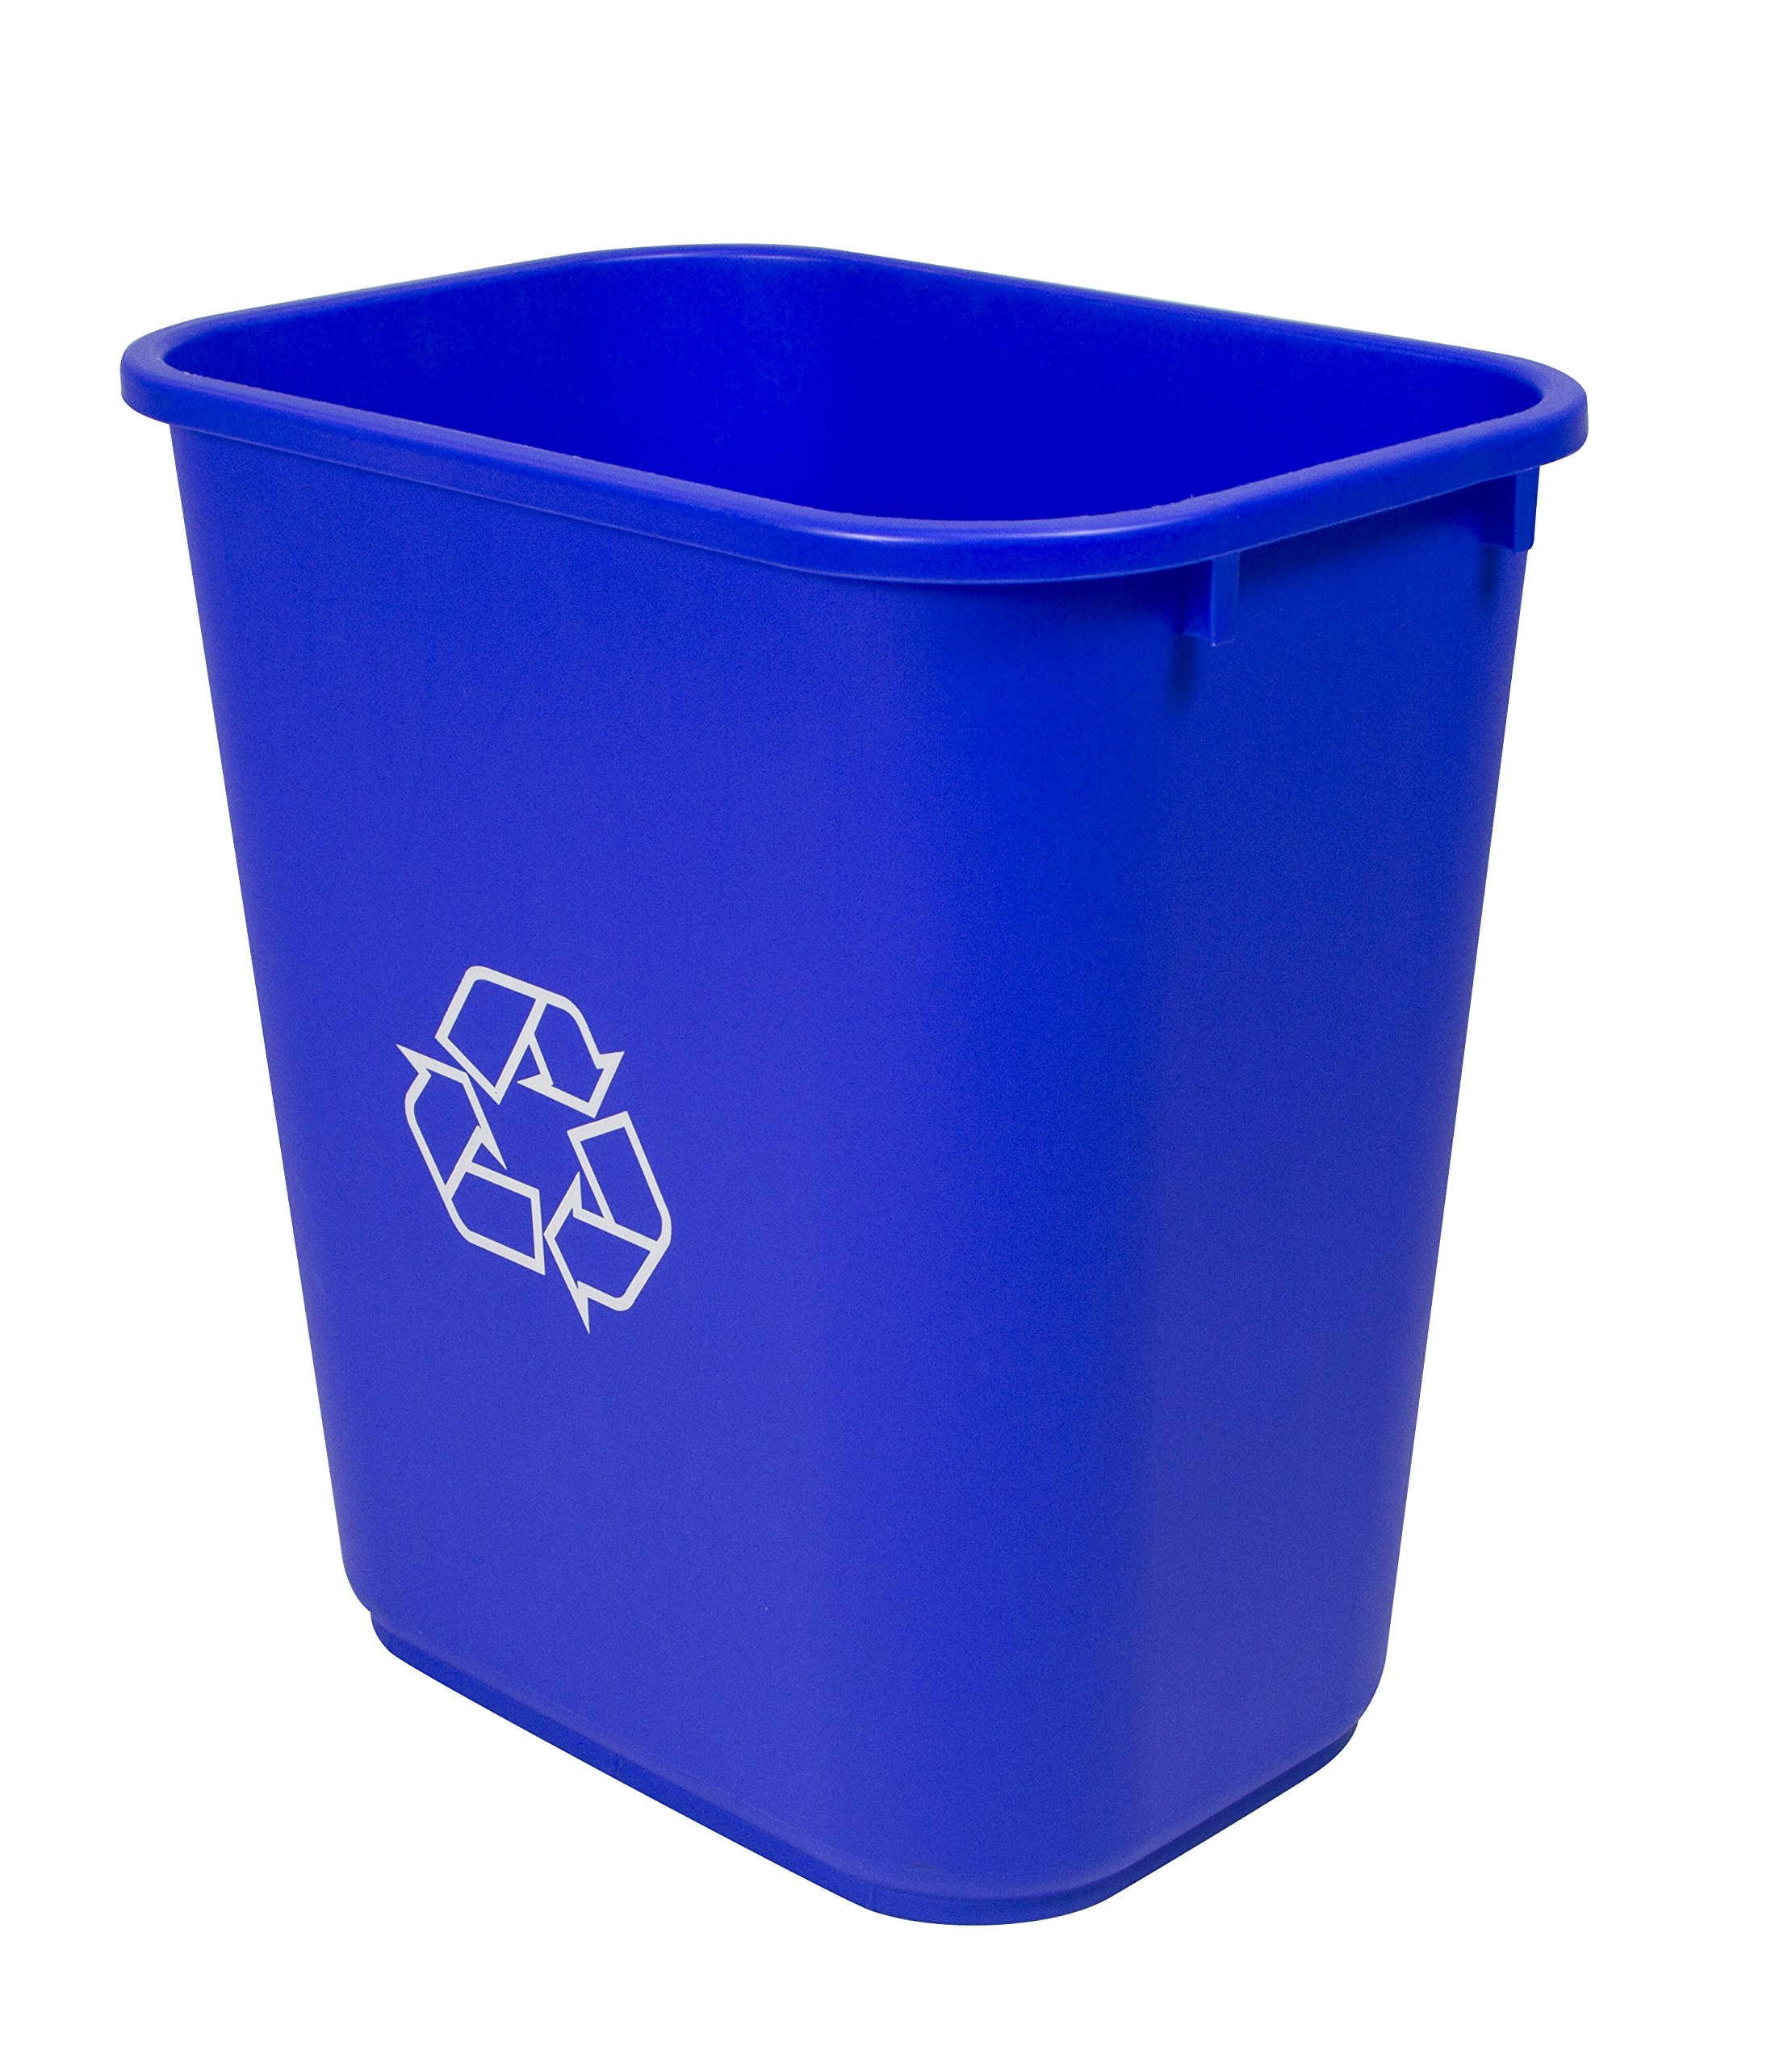 Storex Medium Recycling Basket, 15 x 10.5 x 15 Inches, Blue, (STX00714U01C)